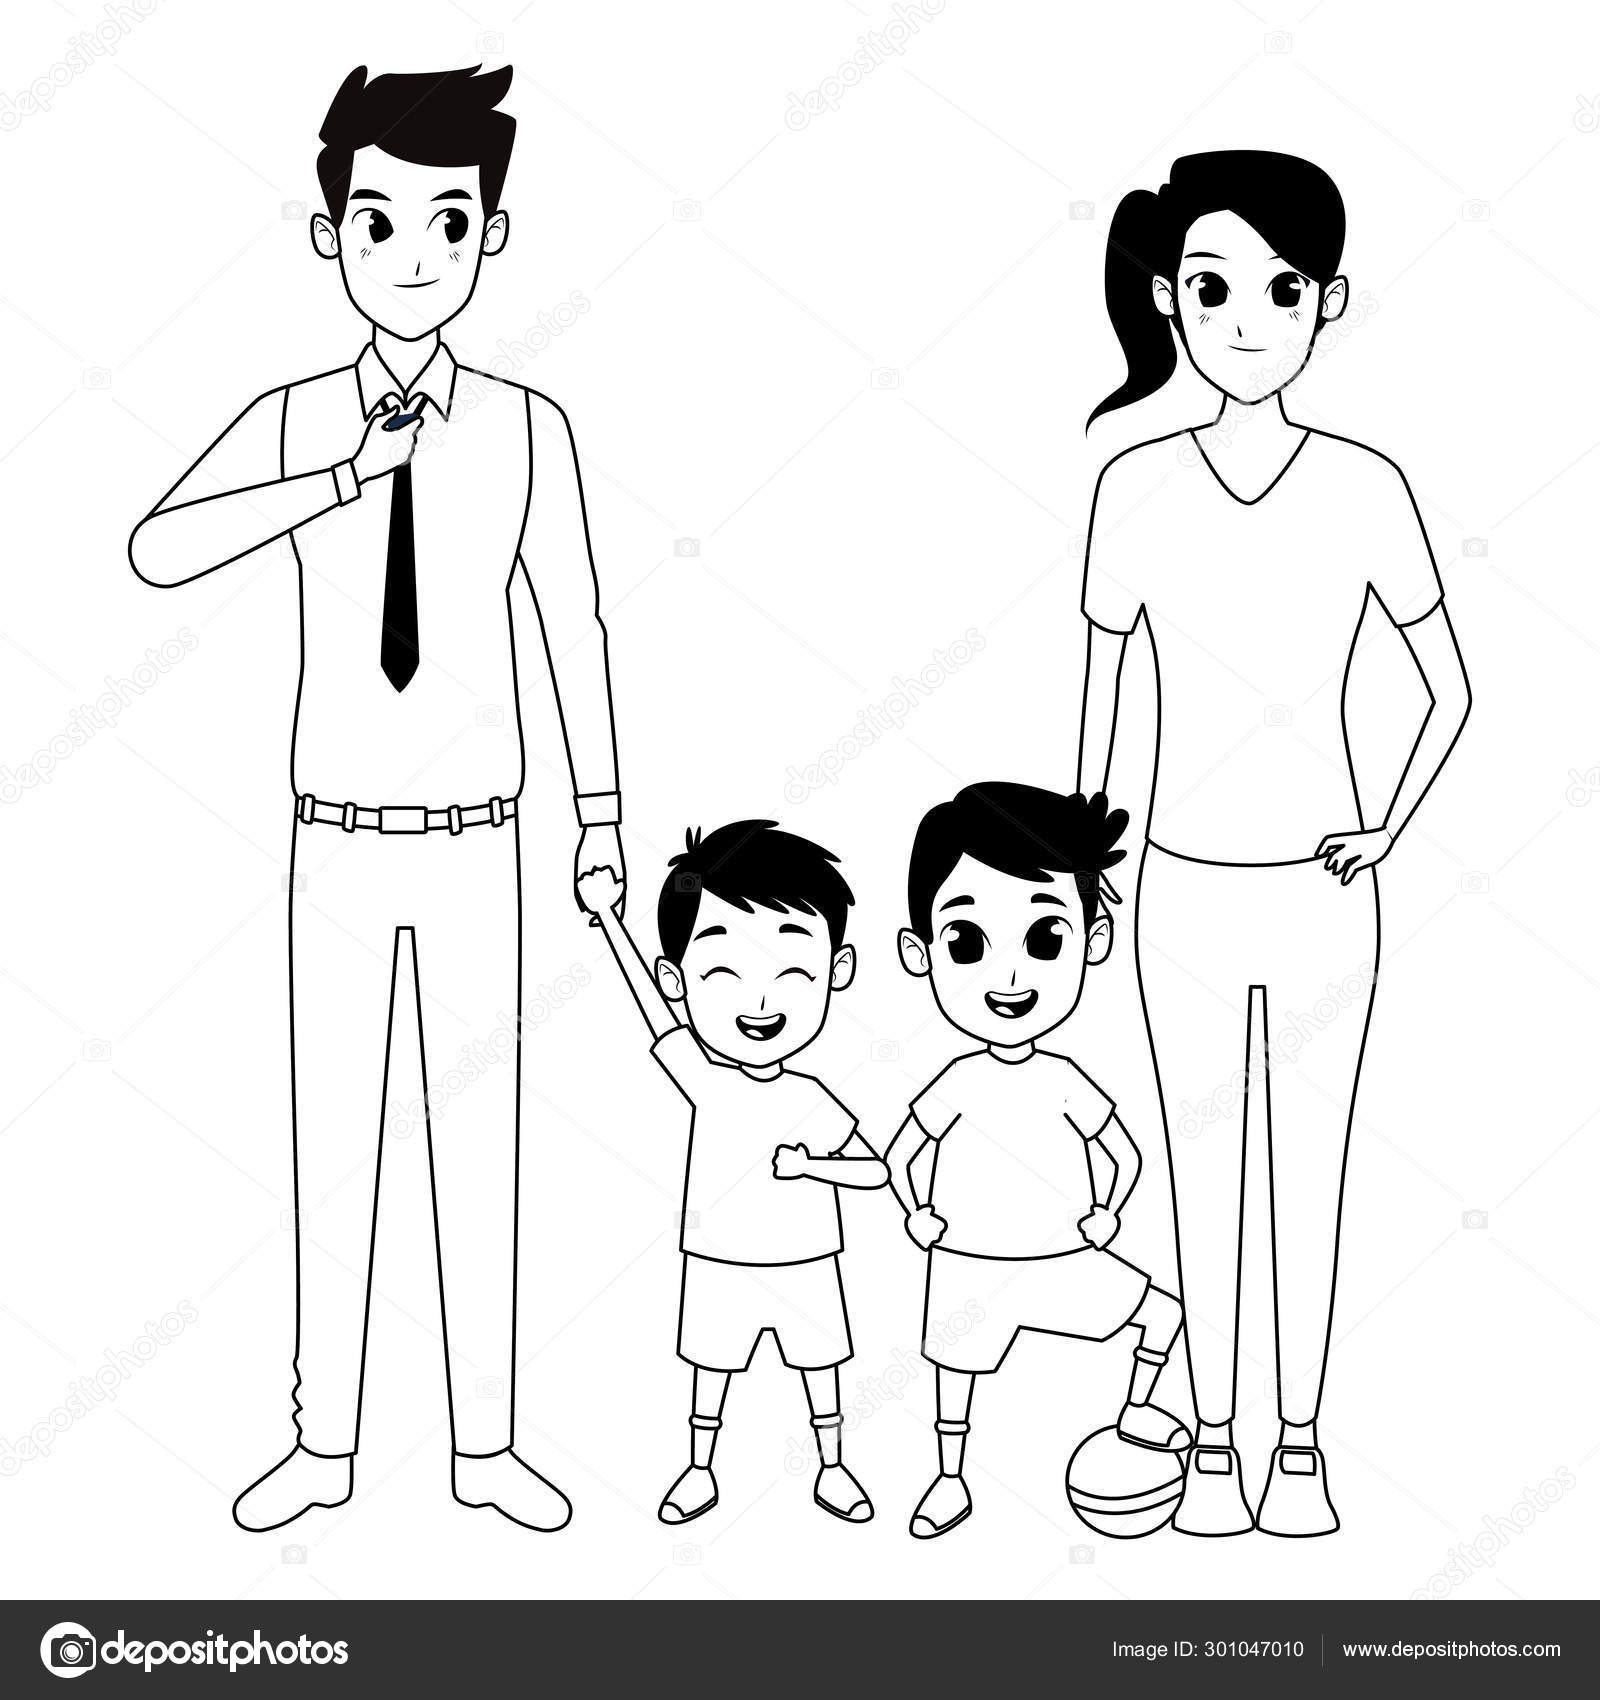 Family Parents And Childrens Cartoons In Black And White Stock Vector C Jemastock 301047010